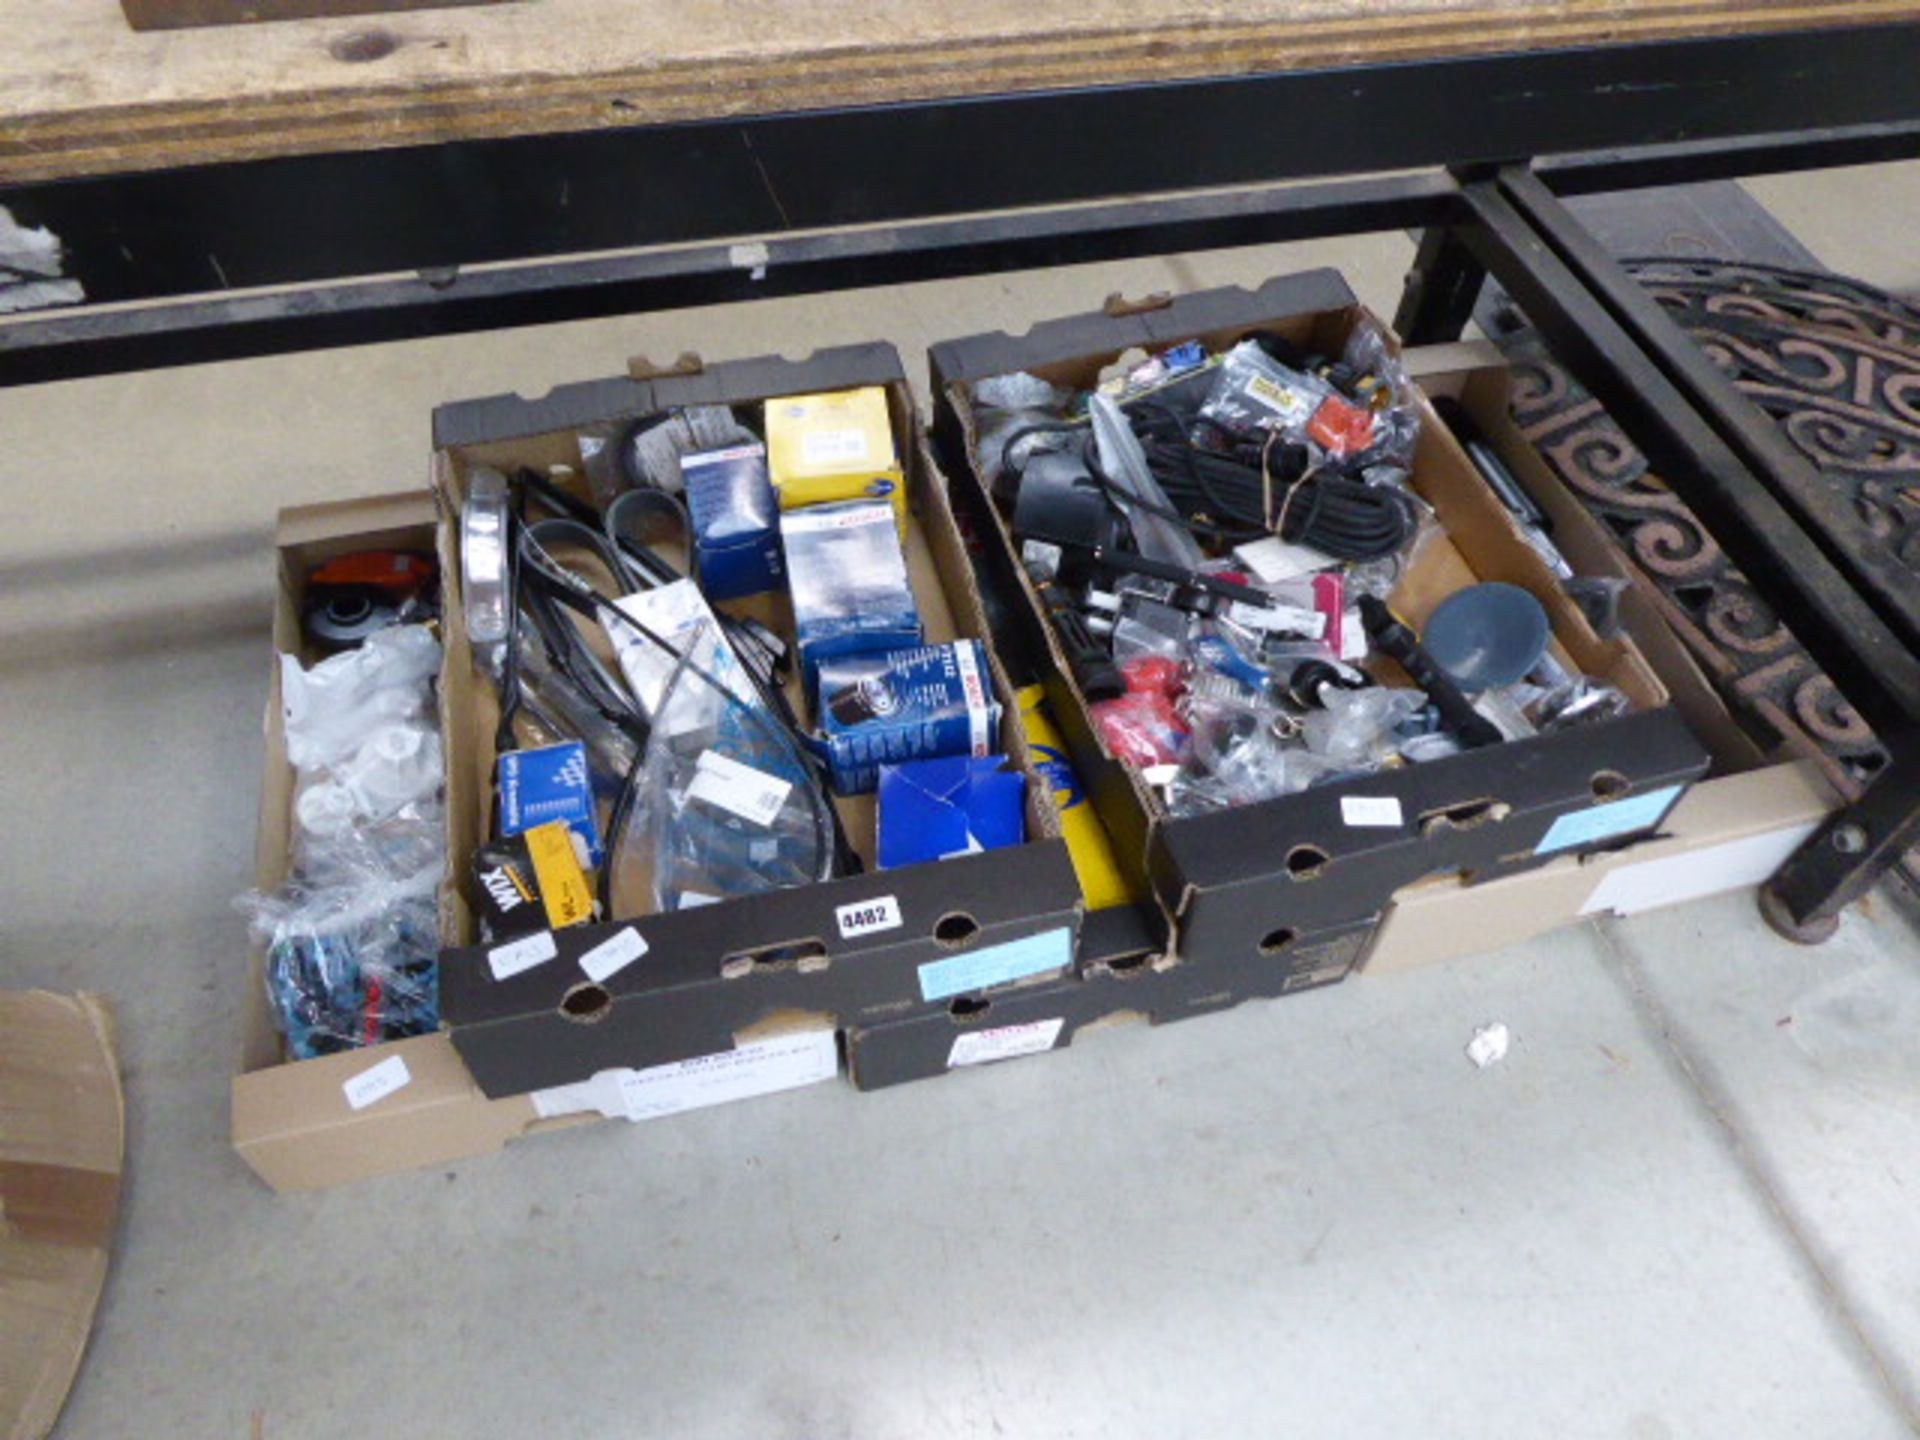 Lot 4482 - 5 trays of assorted car related items and electrical items including filters, lenses, clamps, plugs,